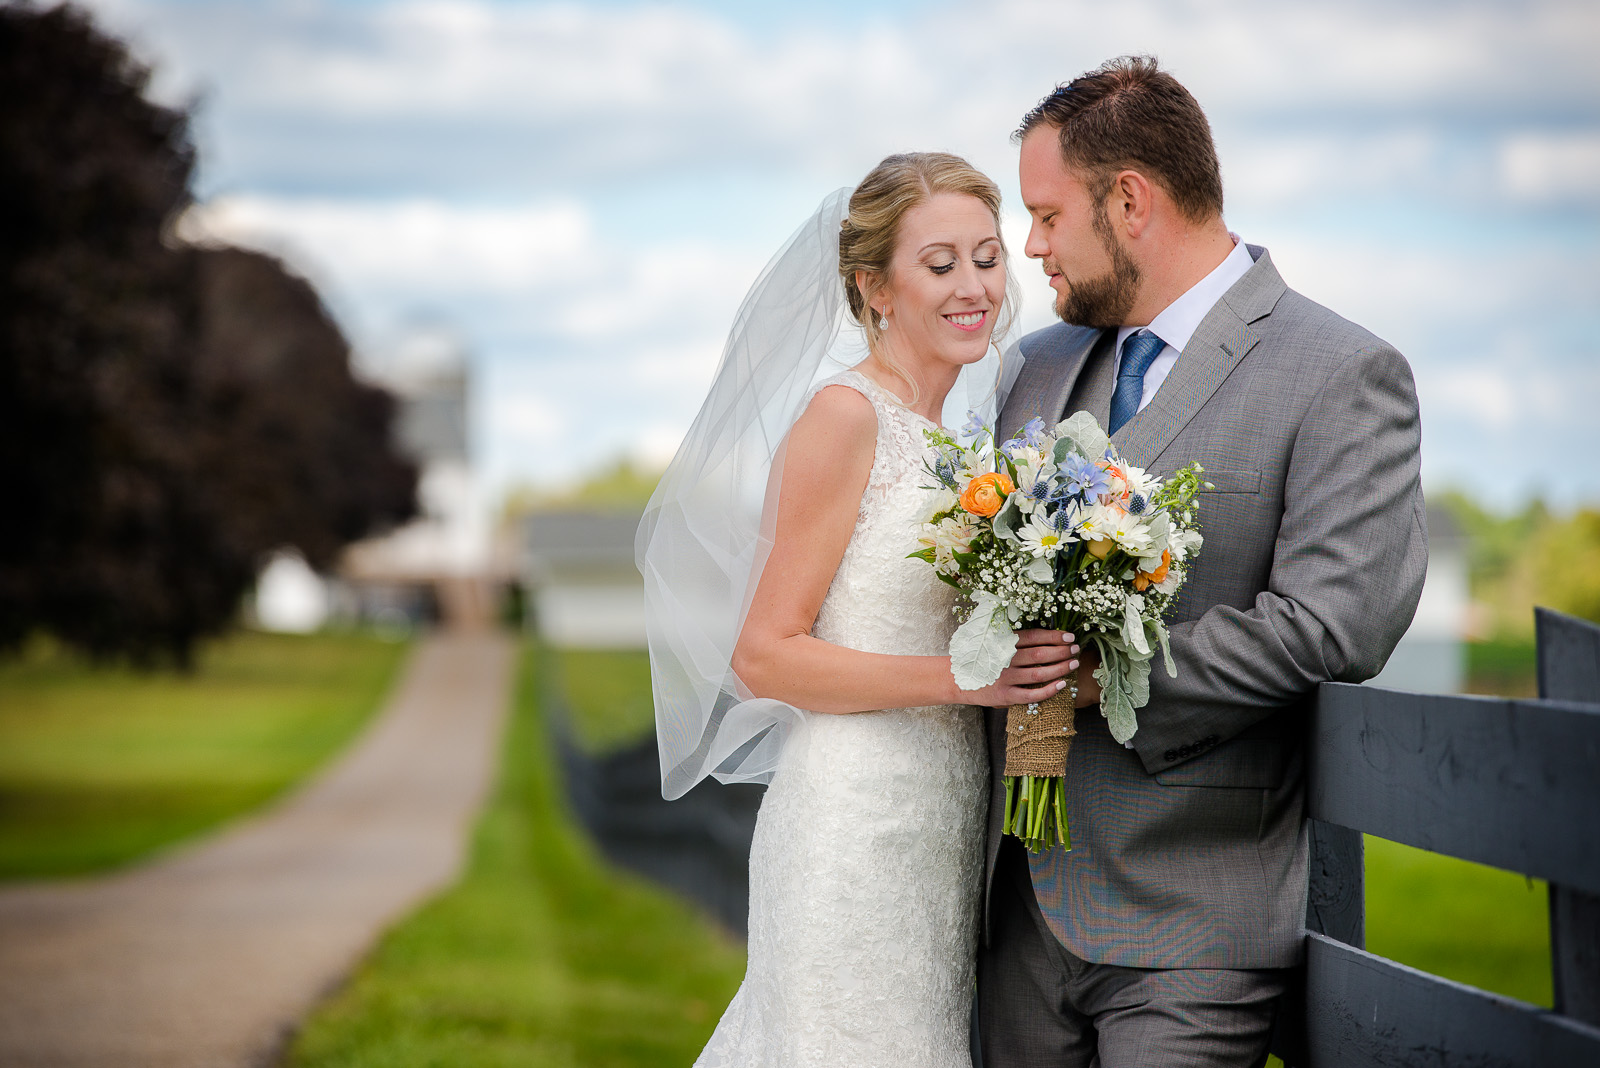 Eric_and_Christy_Photography_Blog_2017_Best_Portraits-1